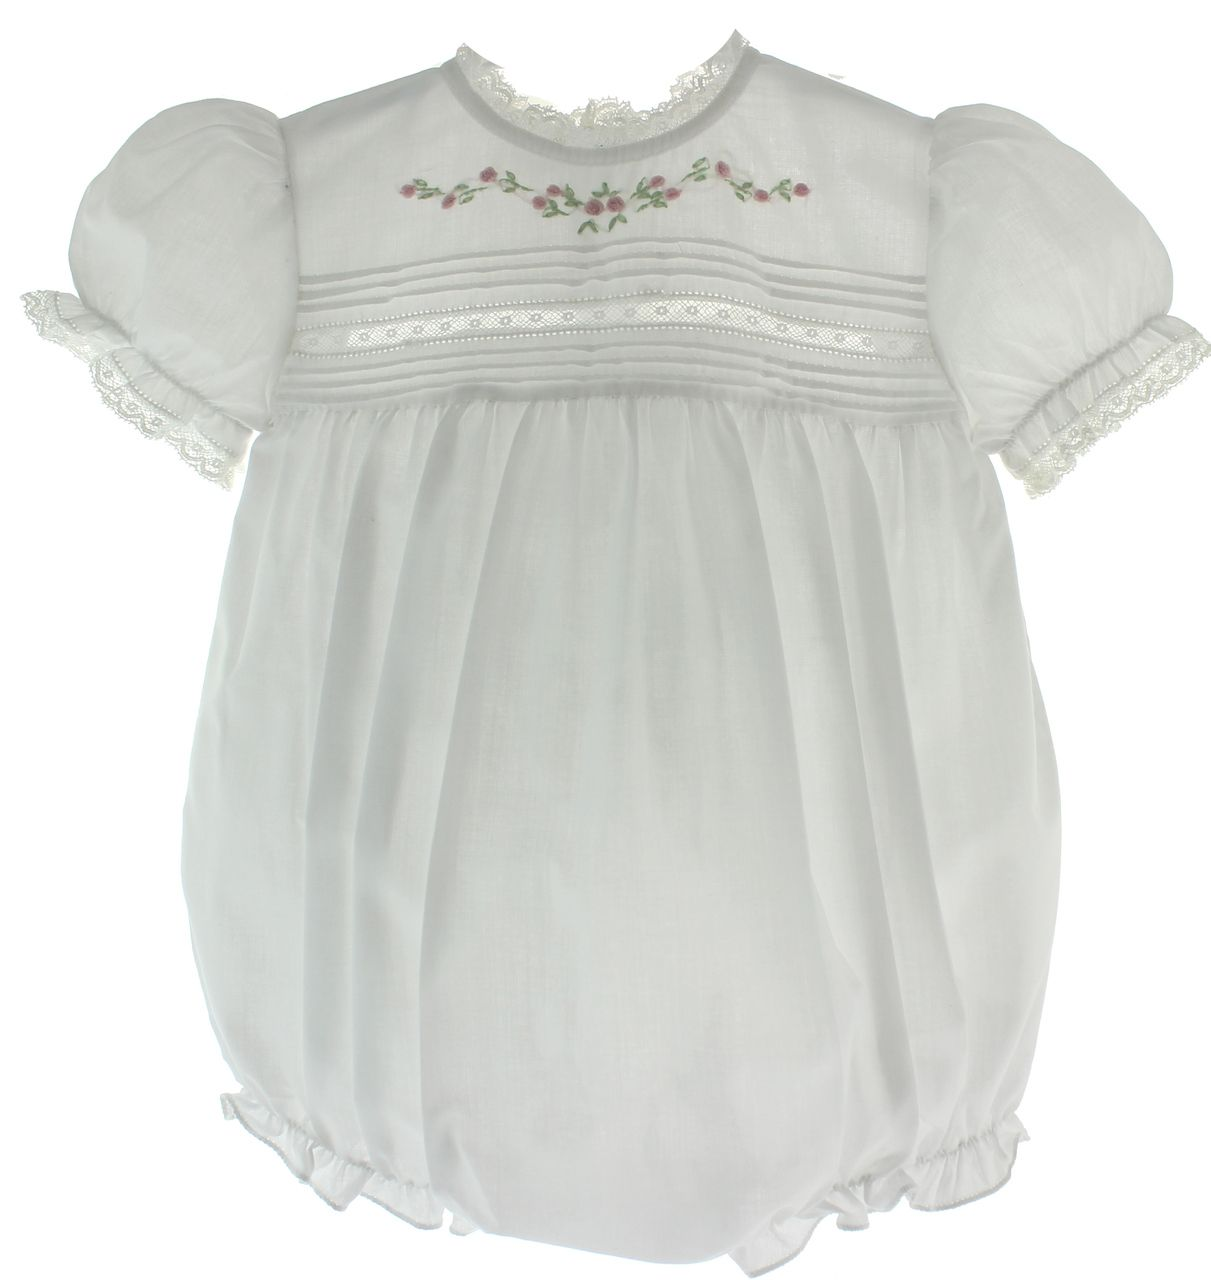 Hiccups Childrens Boutique - Infant Girls White Heirloom Bubble Outfit Pink Flowers Lace Trim Feltman Brothers, $48.00 (https://www.hiccupschildrensboutique.com/infant-girls-white-heirloom-bubble-outfit-pink-flowers-lace-trim-feltman-brothers/)